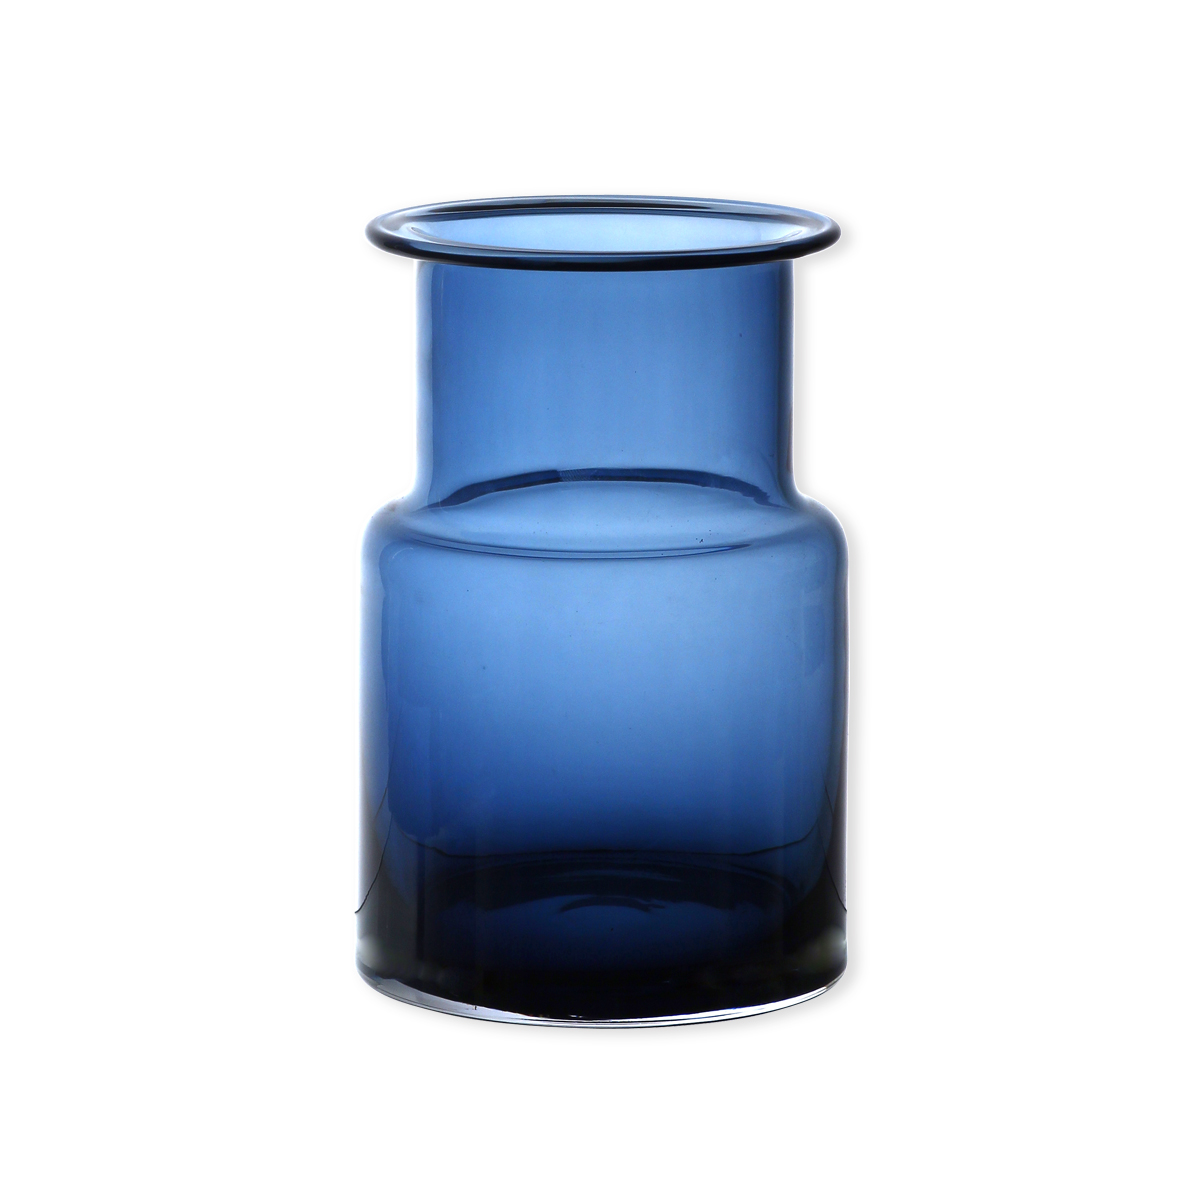 vase design en verre bleu marine 20cm objets d co bruno evrard. Black Bedroom Furniture Sets. Home Design Ideas